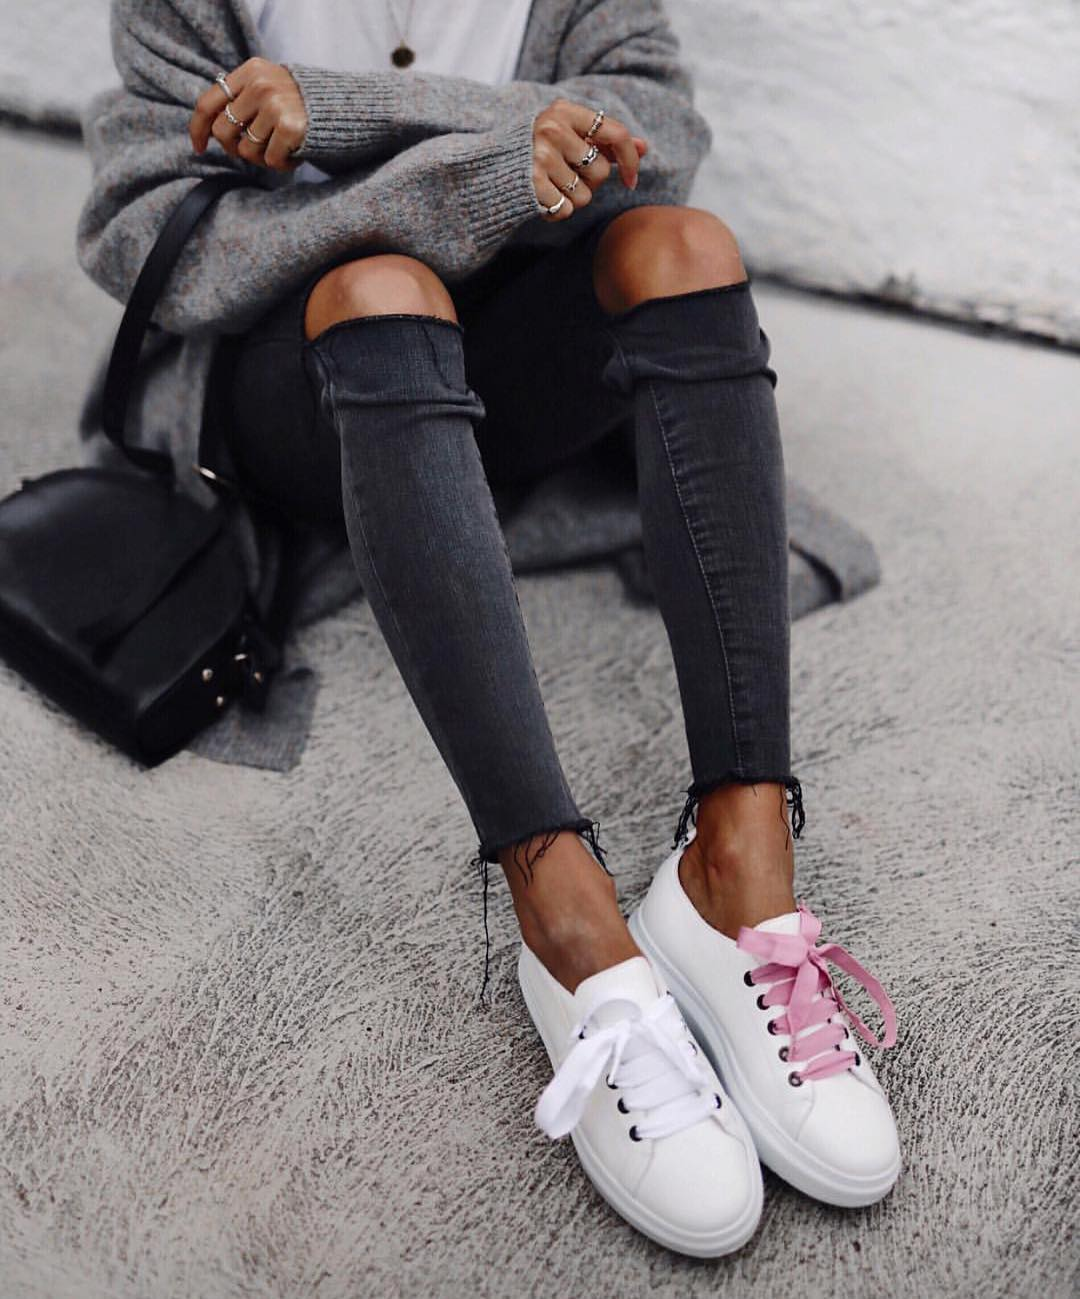 Modern Grunge For Spring: Knee Ripped Jeans, Wool Cardigan And White Kicks 2020